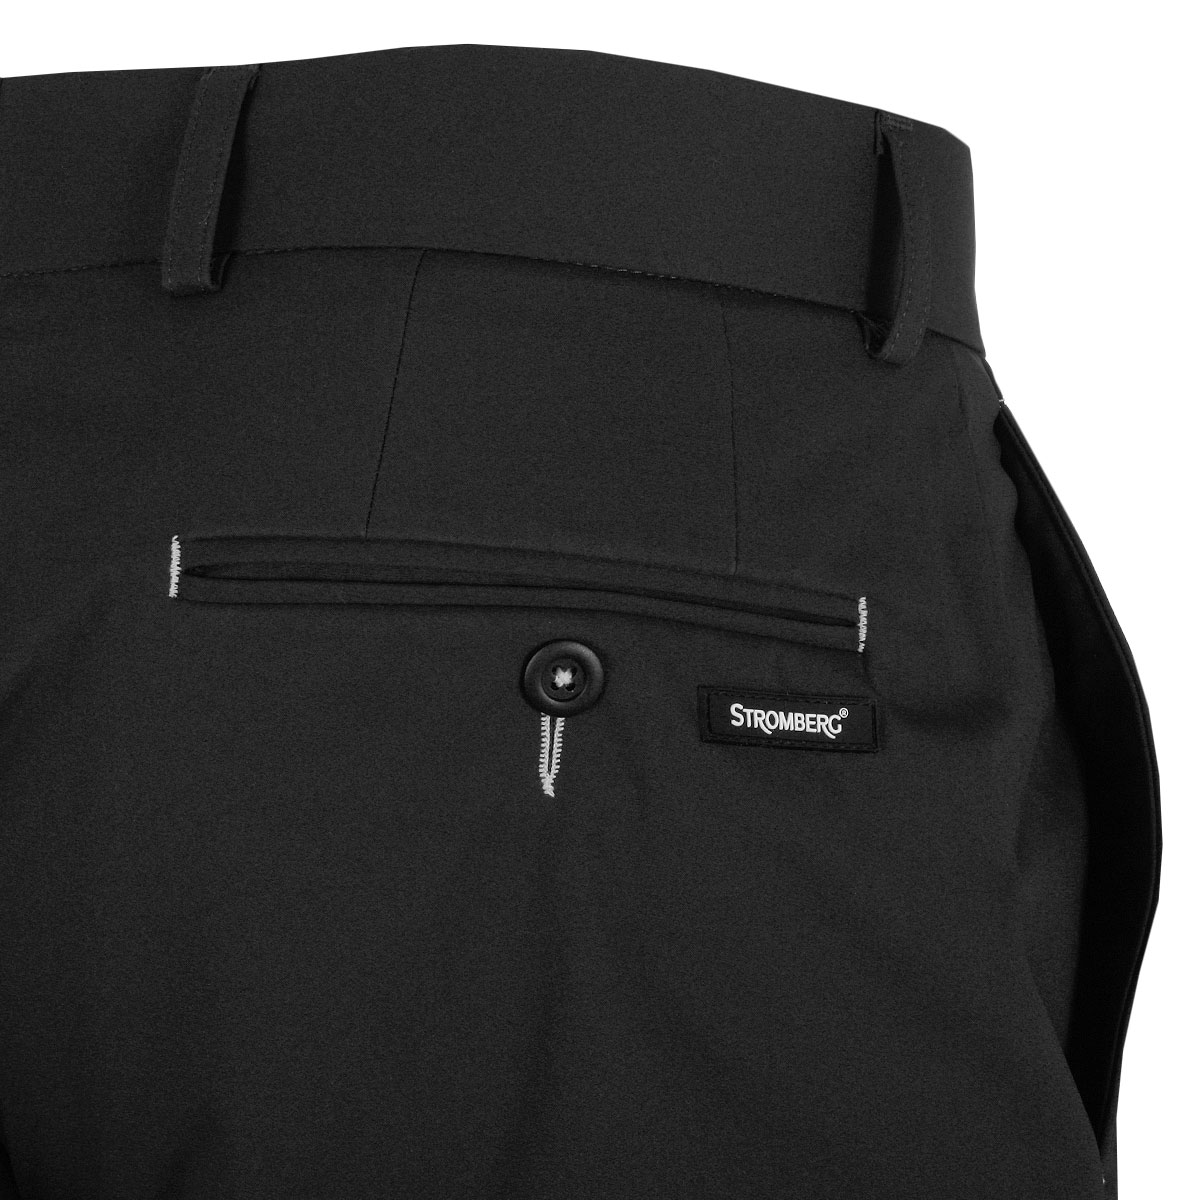 Stromberg-Mens-Wintra-2-0-Winter-Tech-Waterproof-Golf-Trousers-29-OFF-RRP thumbnail 4